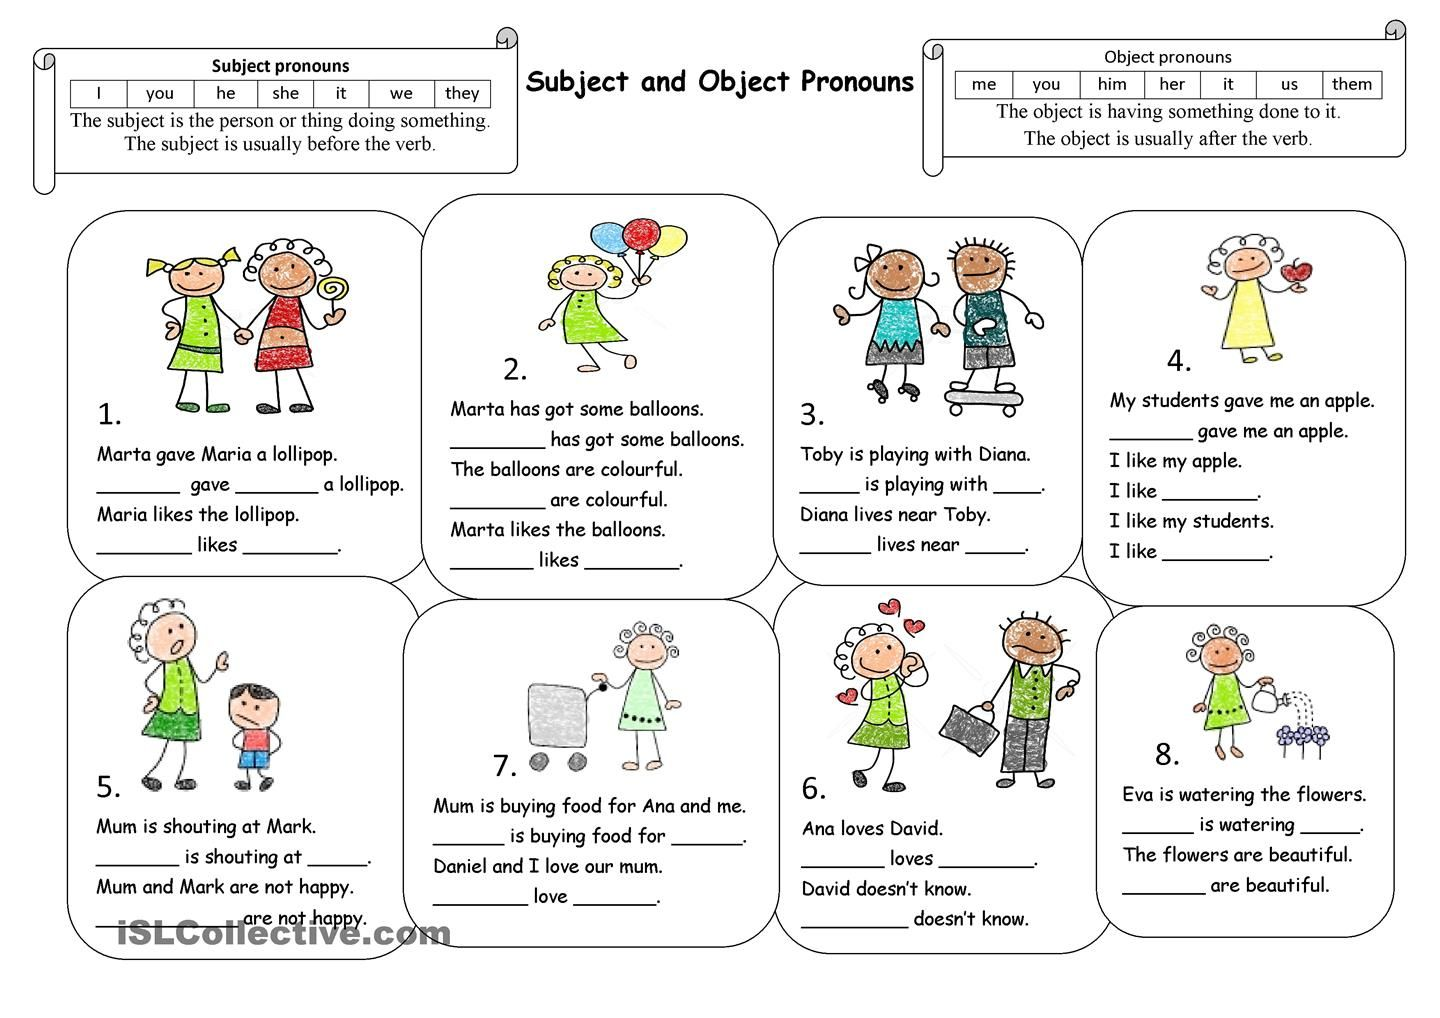 worksheet Esl Subject Pronouns Worksheet esl pronoun chart google search teach english tools pinterest search